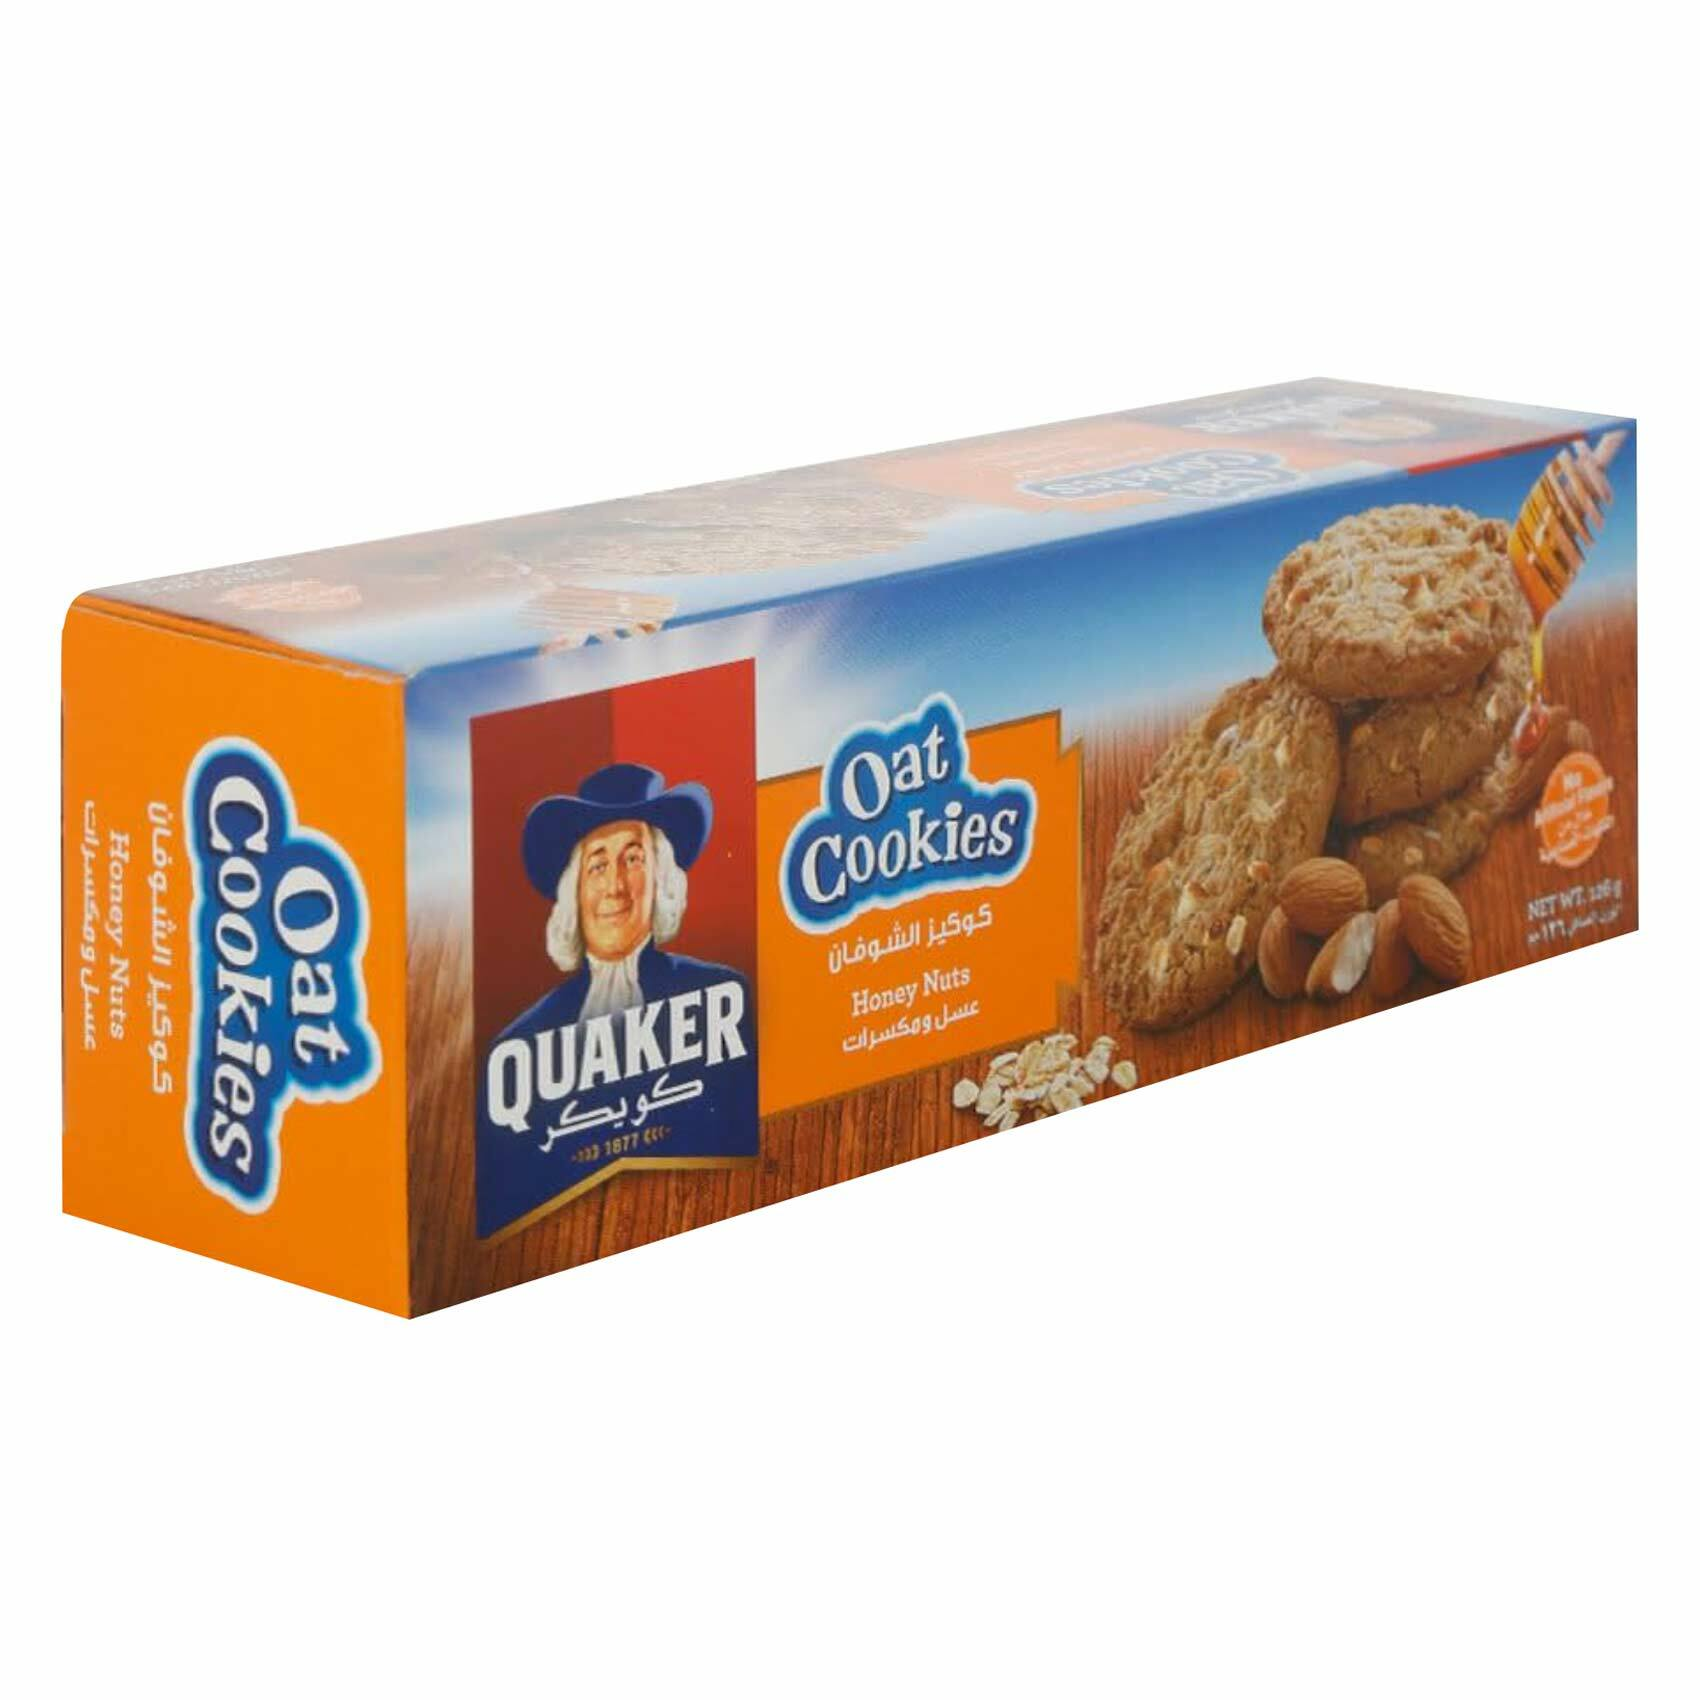 Buy Quaker Honey Nuts Oats Cookies 126g Online Shop Food Cupboard On Carrefour Uae